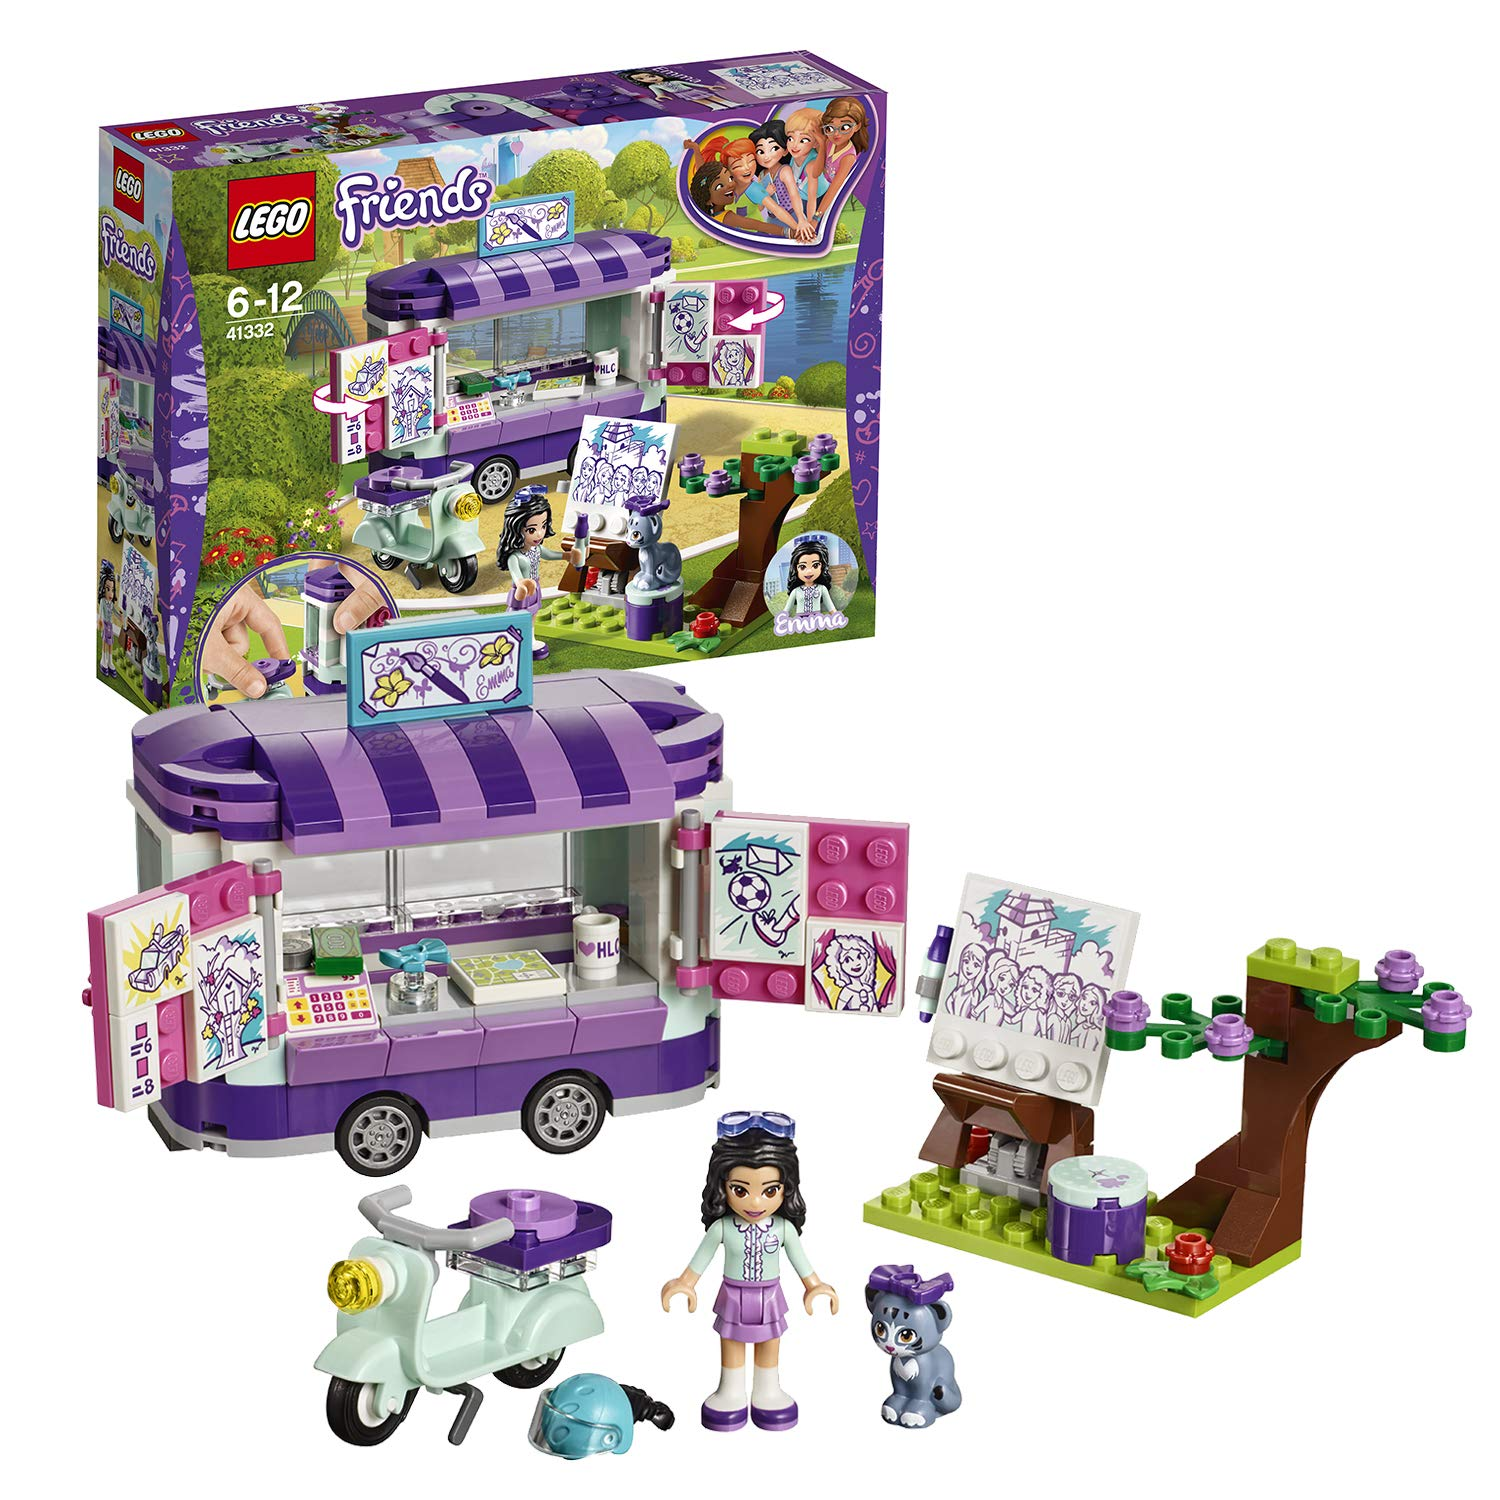 Lego 41332 friends heartlake emmas art stand trailer playset build and play fun toys for kids lego amazon co uk toys games